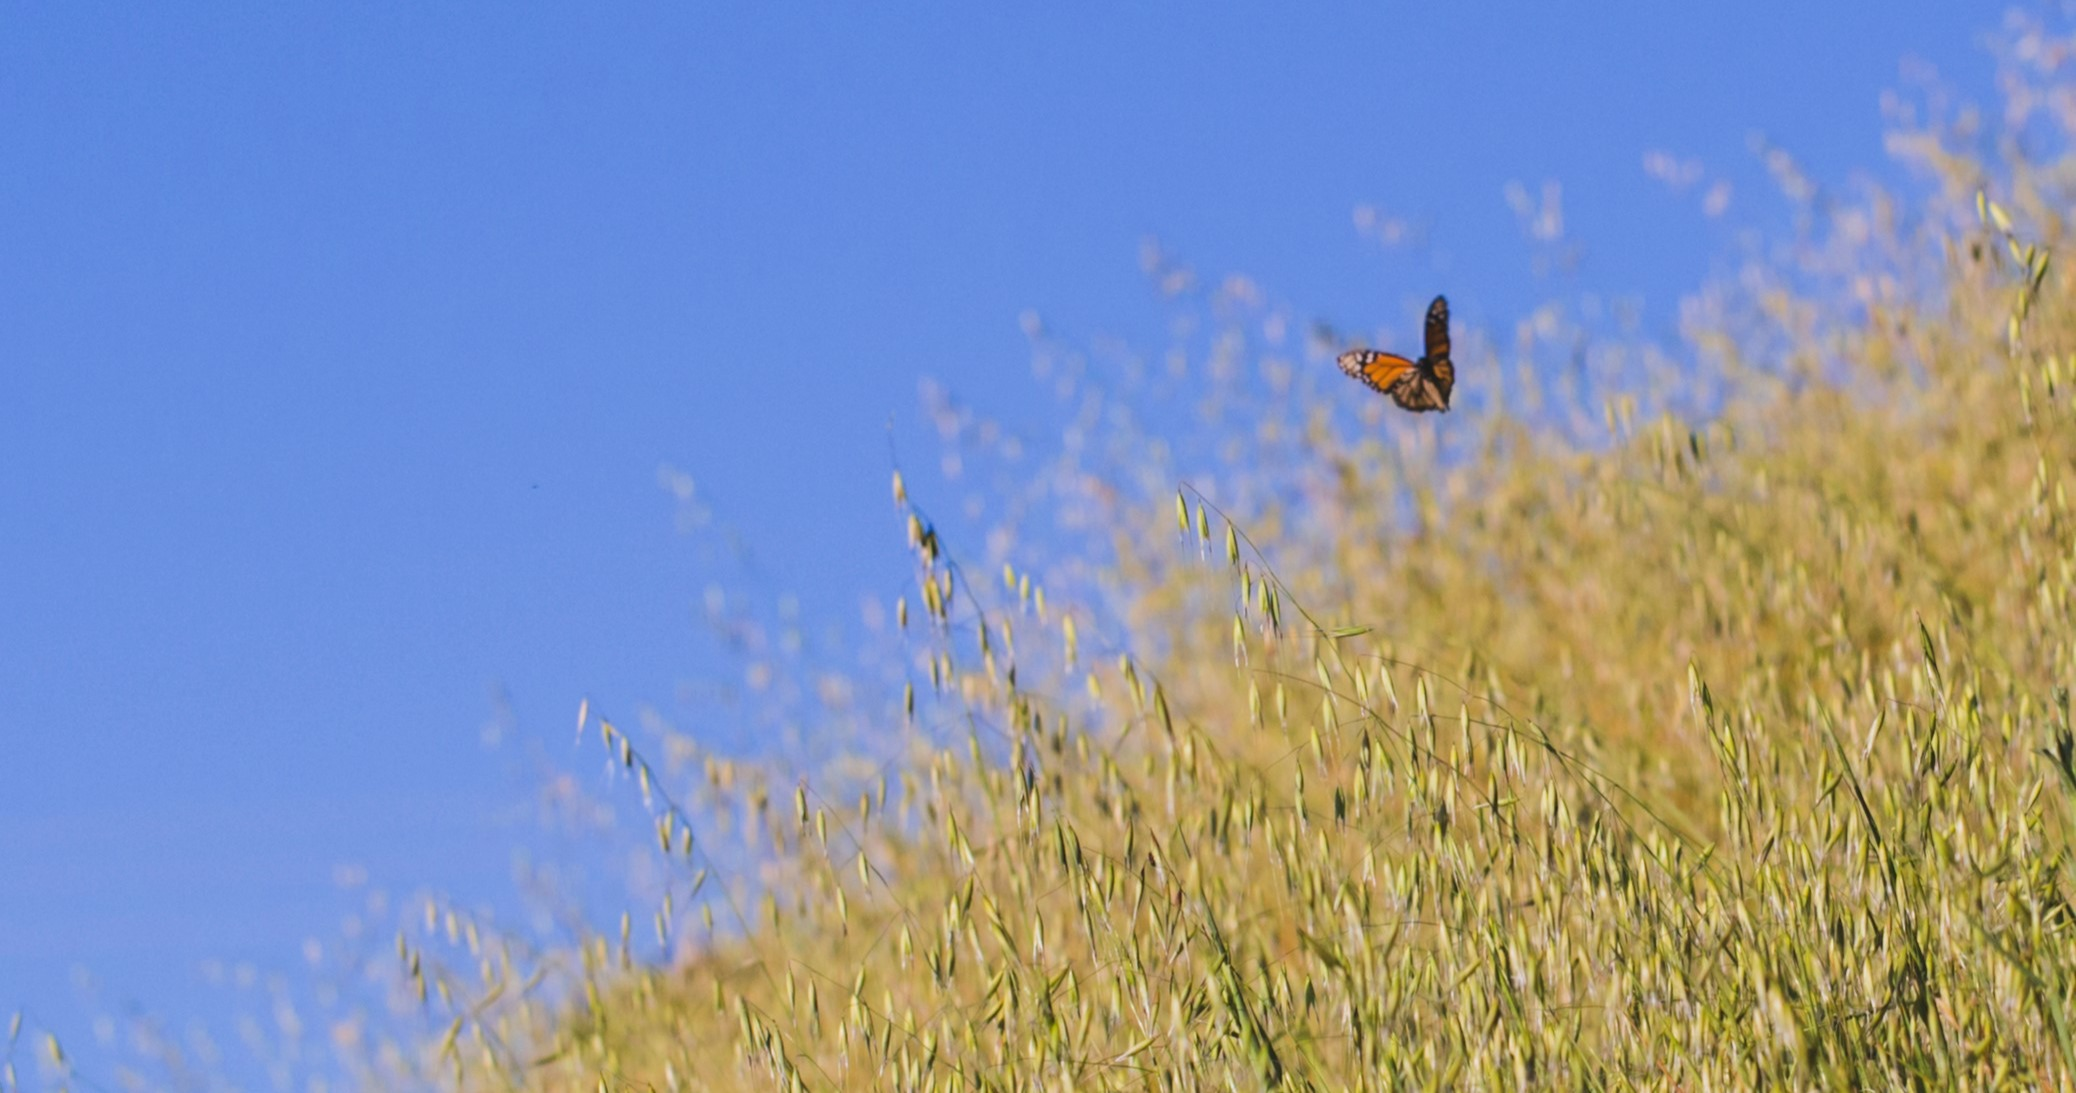 Monarch butterfly flying over golden grass under blue sky